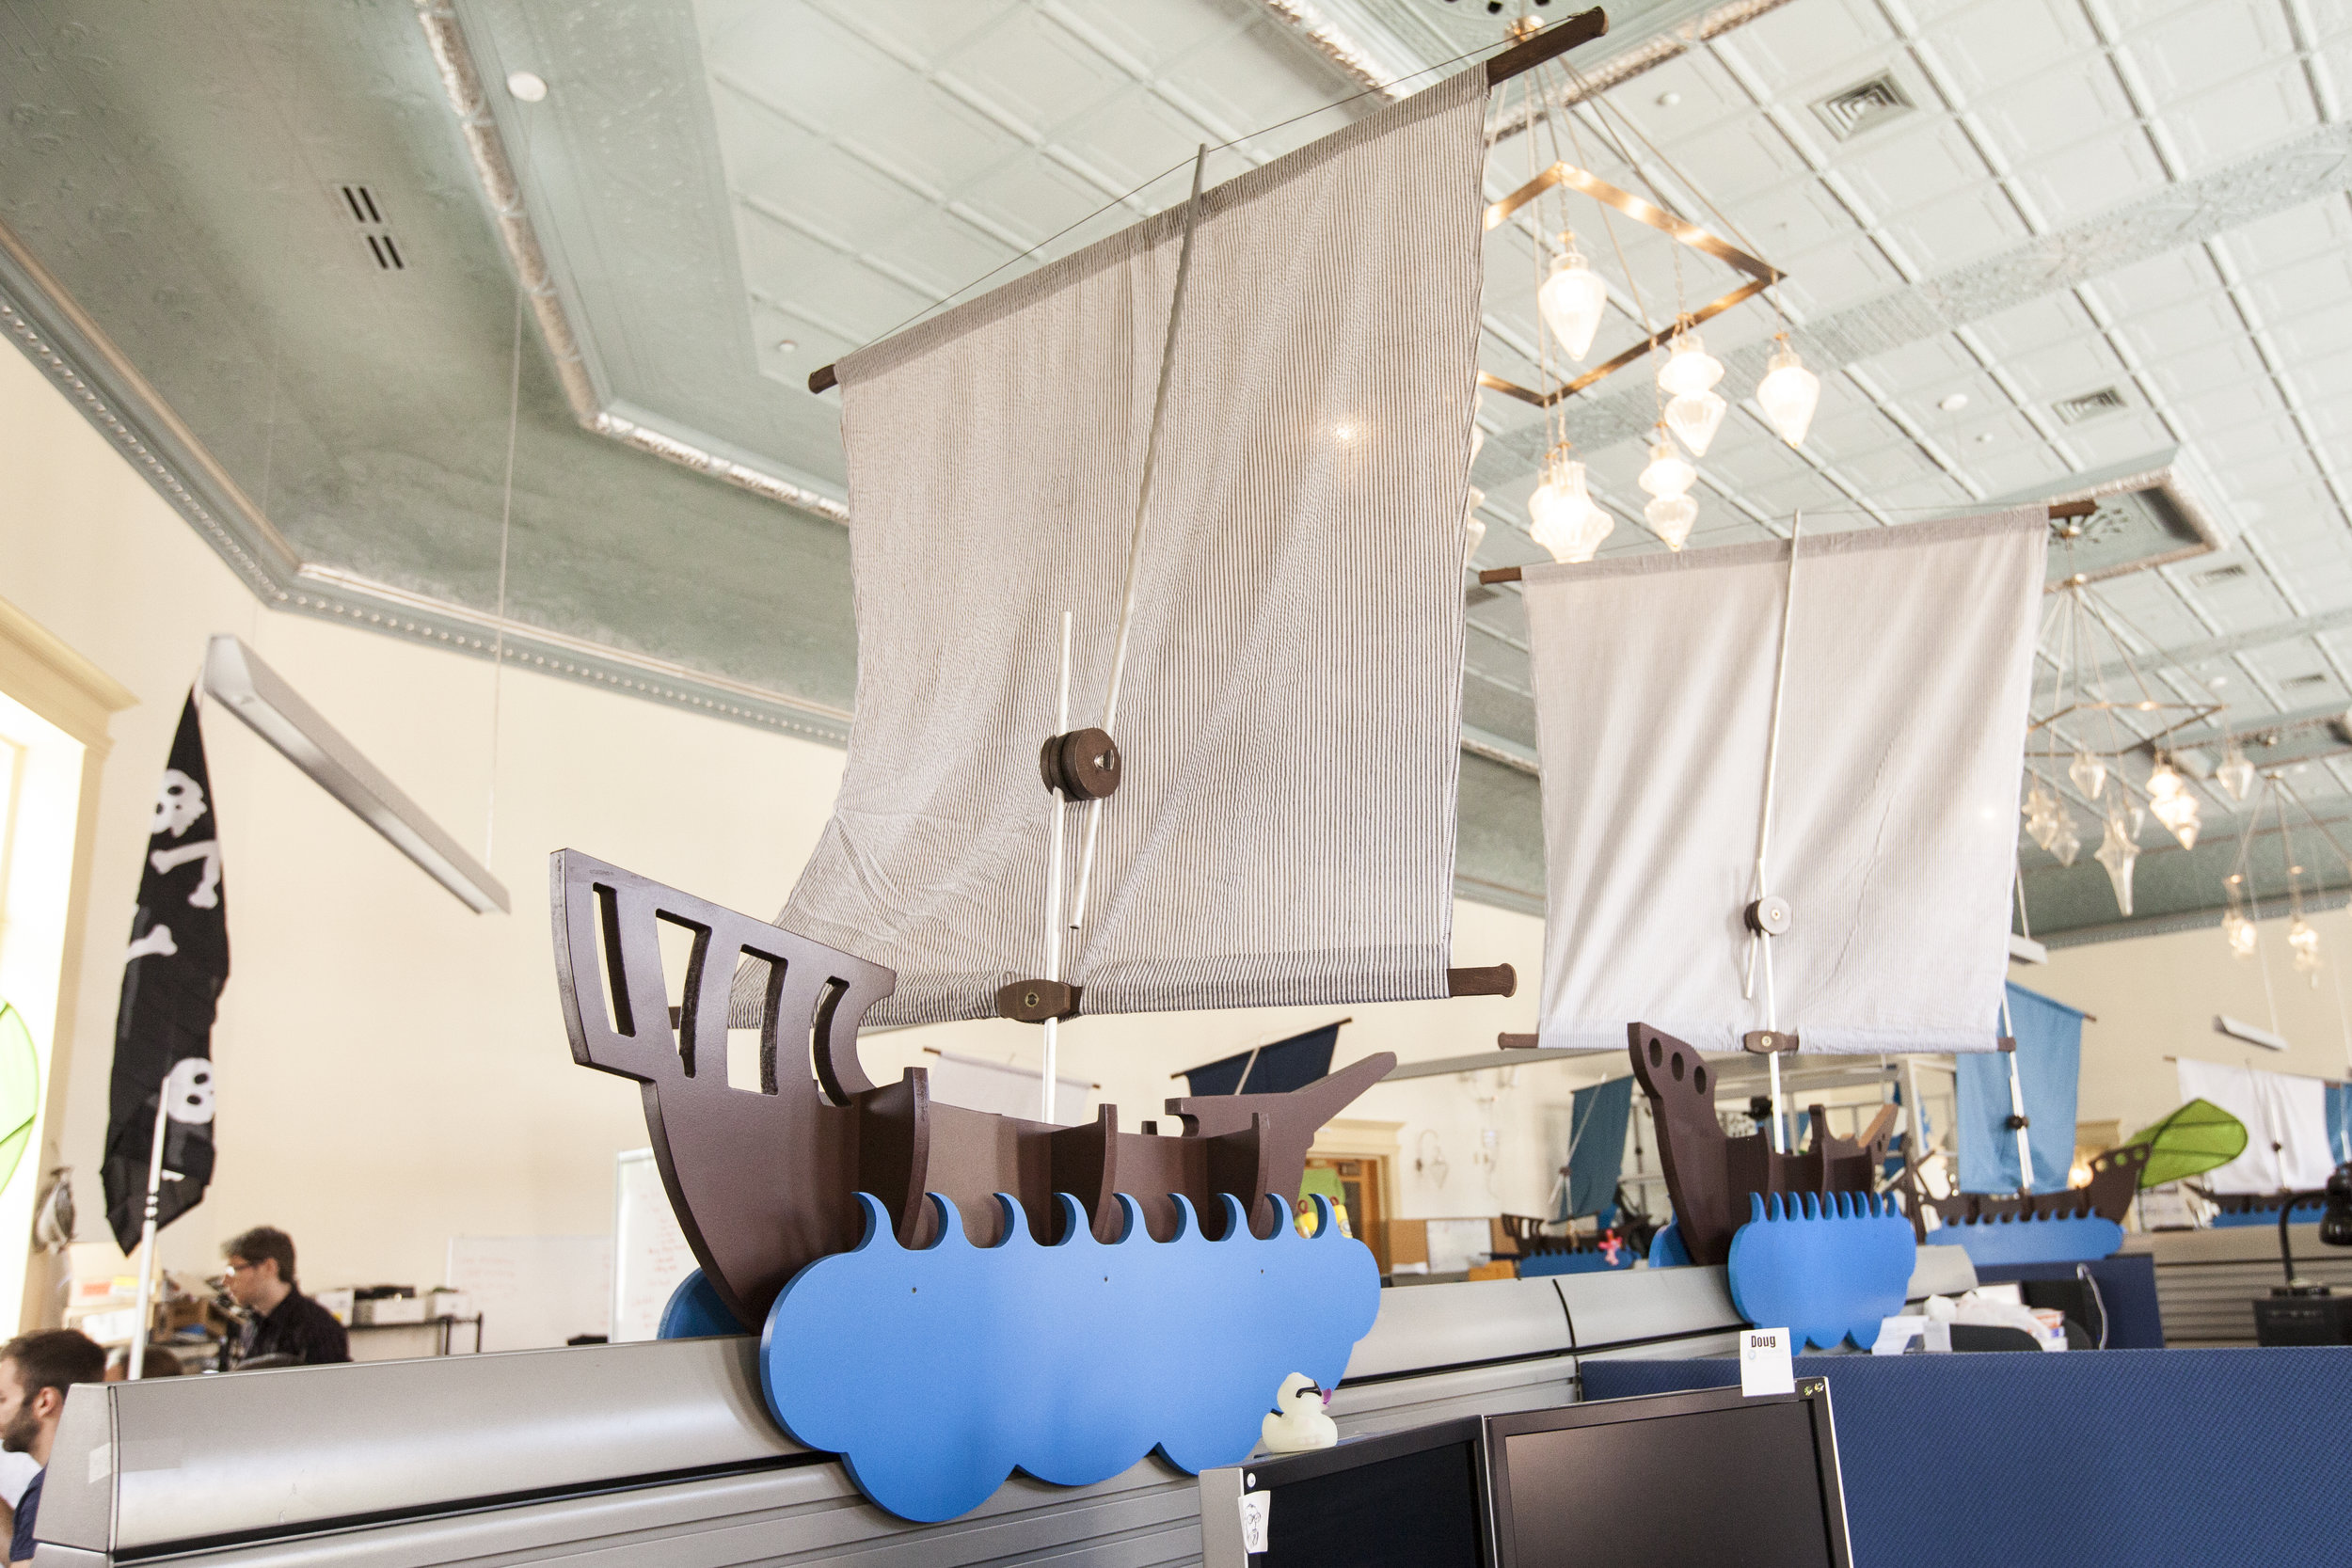 The ship sun shades sit onto the existing desk particians.